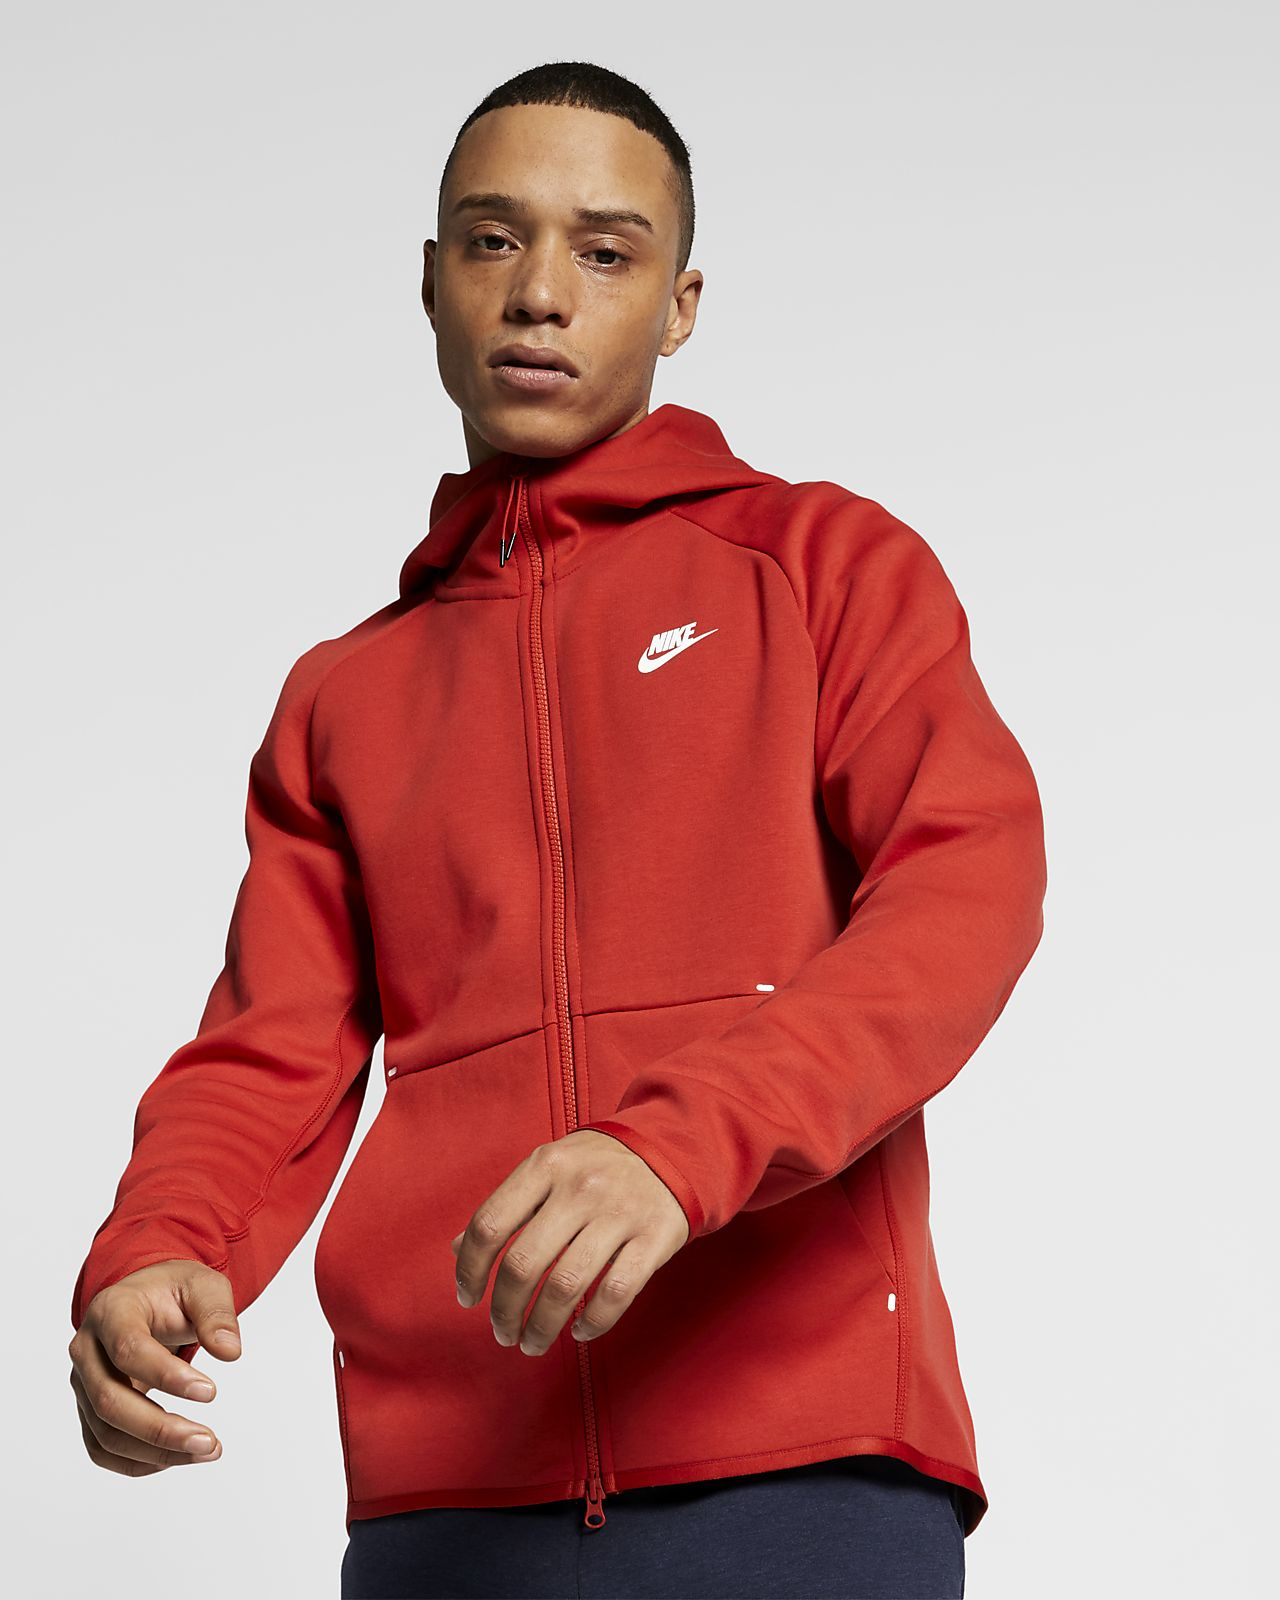 c8cabdf54c3 Nike Sportswear Tech Fleece Men s Full-Zip Hoodie. Nike.com